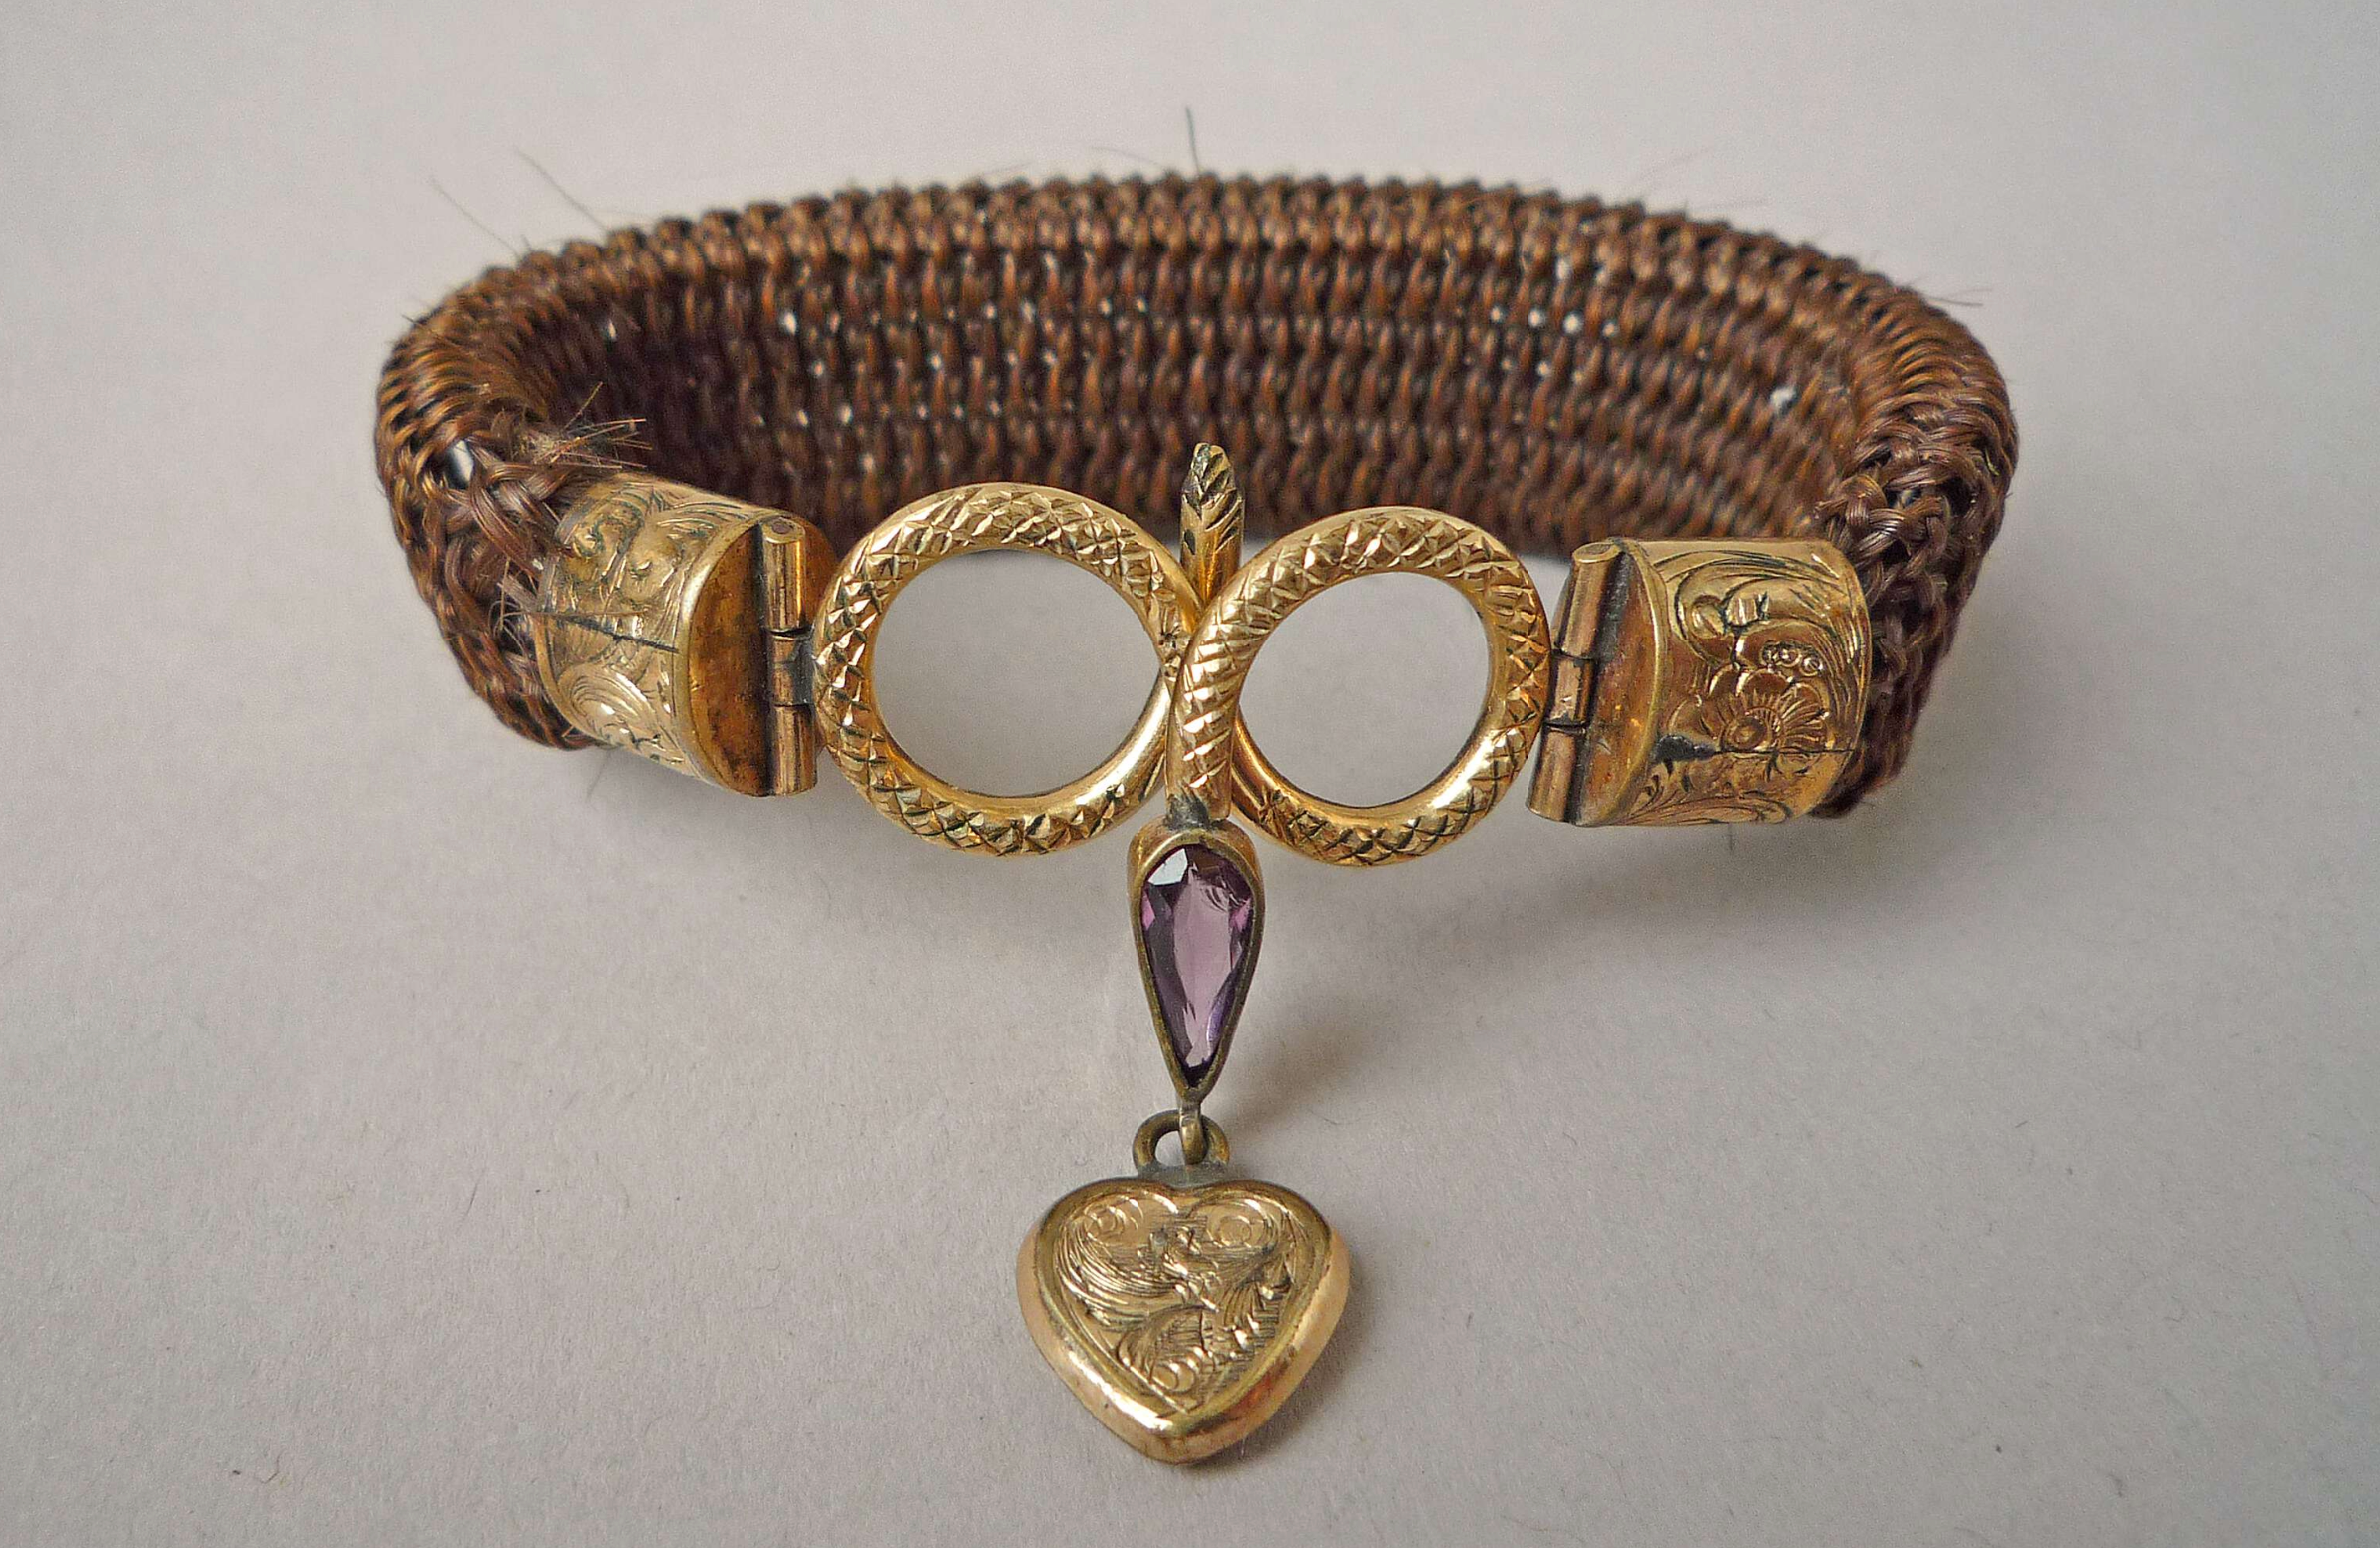 Bracelet of flat plaited hair with engraved gold ends and coiled gold serpent clasp with amethyst drop and small pendant gold heart, thought to be the work of Antoni Forrer, c1850-1870, British Museum